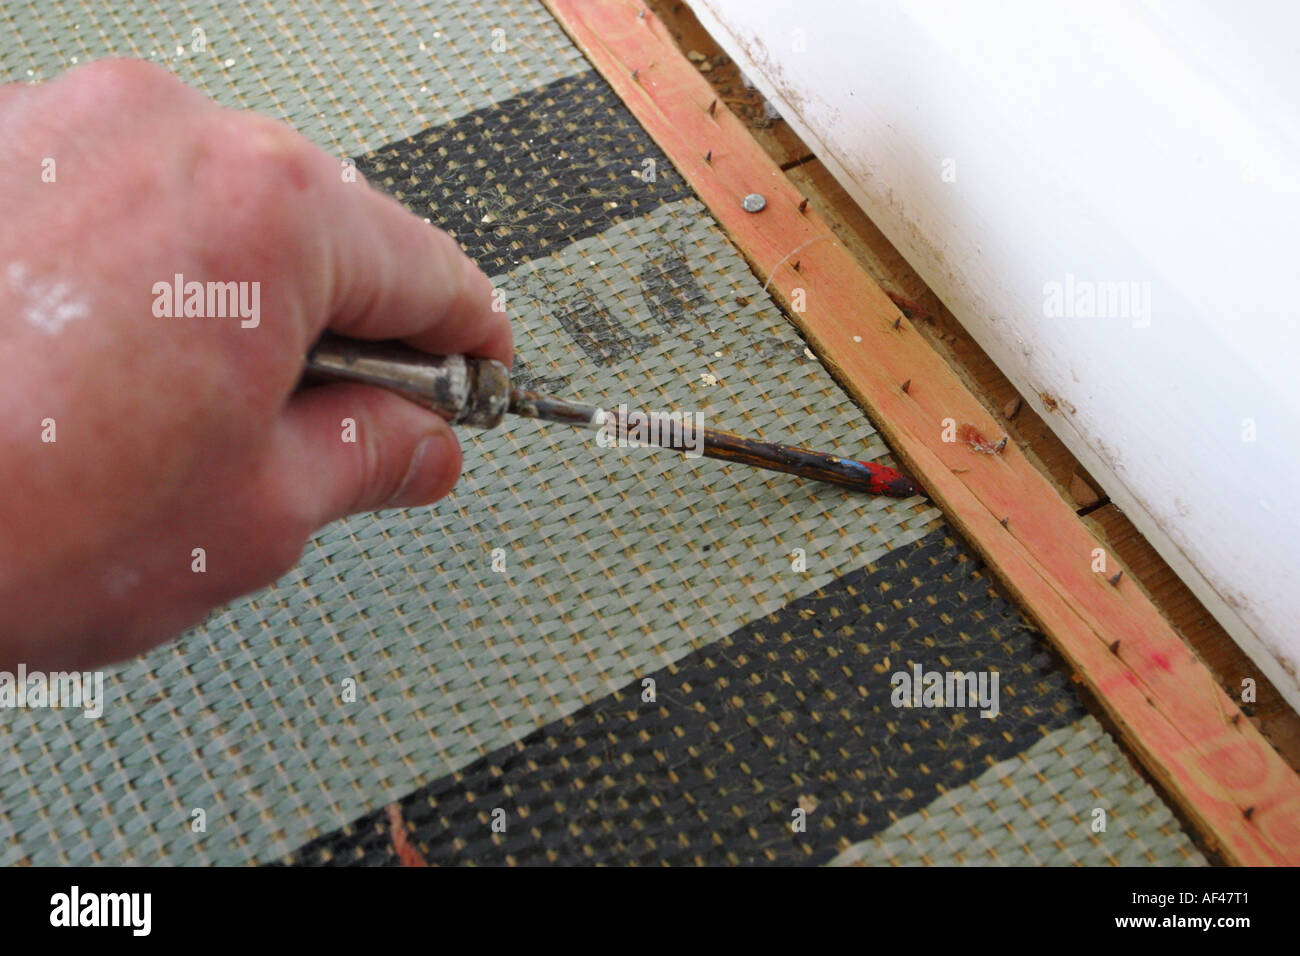 Diy Using A Screwdriver To Lift Up And Remove Carpet